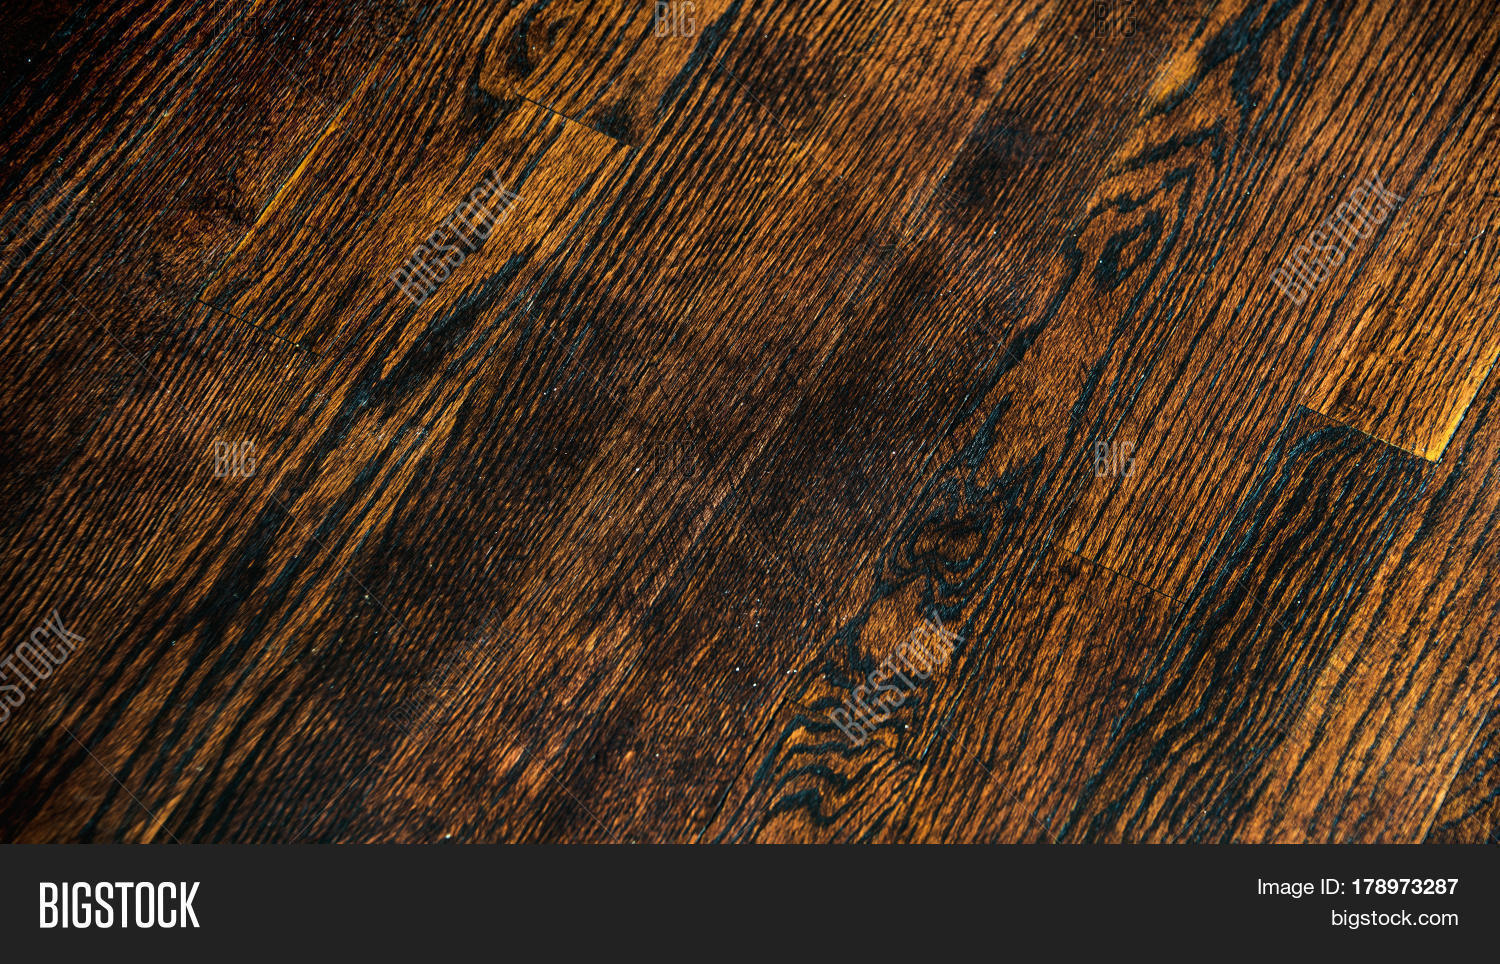 dark wood floor pattern. Dark wood floor texture and background  Brown painted Old italina Wood Floor Texture Background Image Photo Bigstock